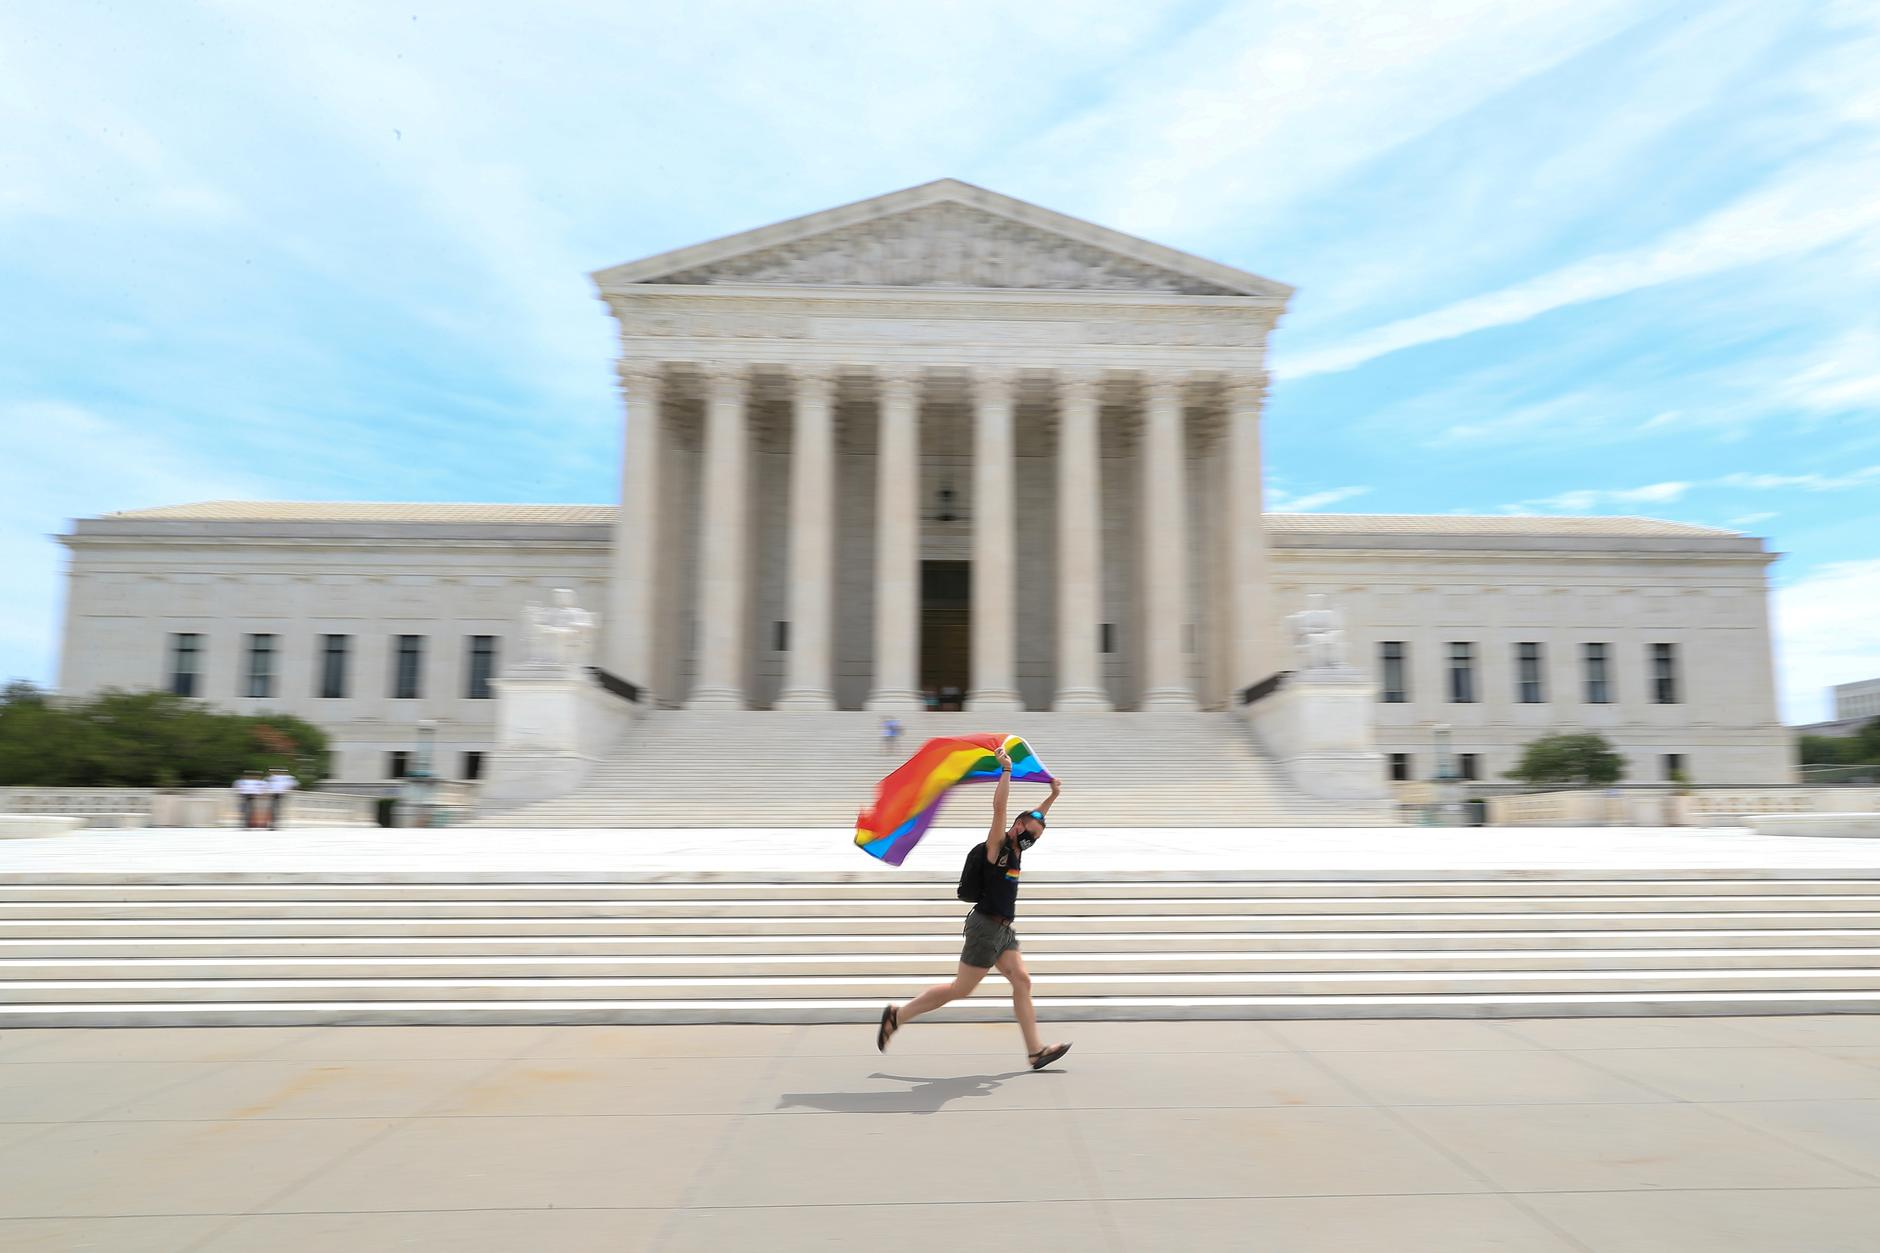 Joseph Fons holding a Pride Flag, runs in front of the U.S. Supreme Court building after the court ruled that a federal law banning workplace discrimination also covers sexual orientation, in Washington, D.C., U.S., June 15, 2020. REUTERS/Tom Brenner